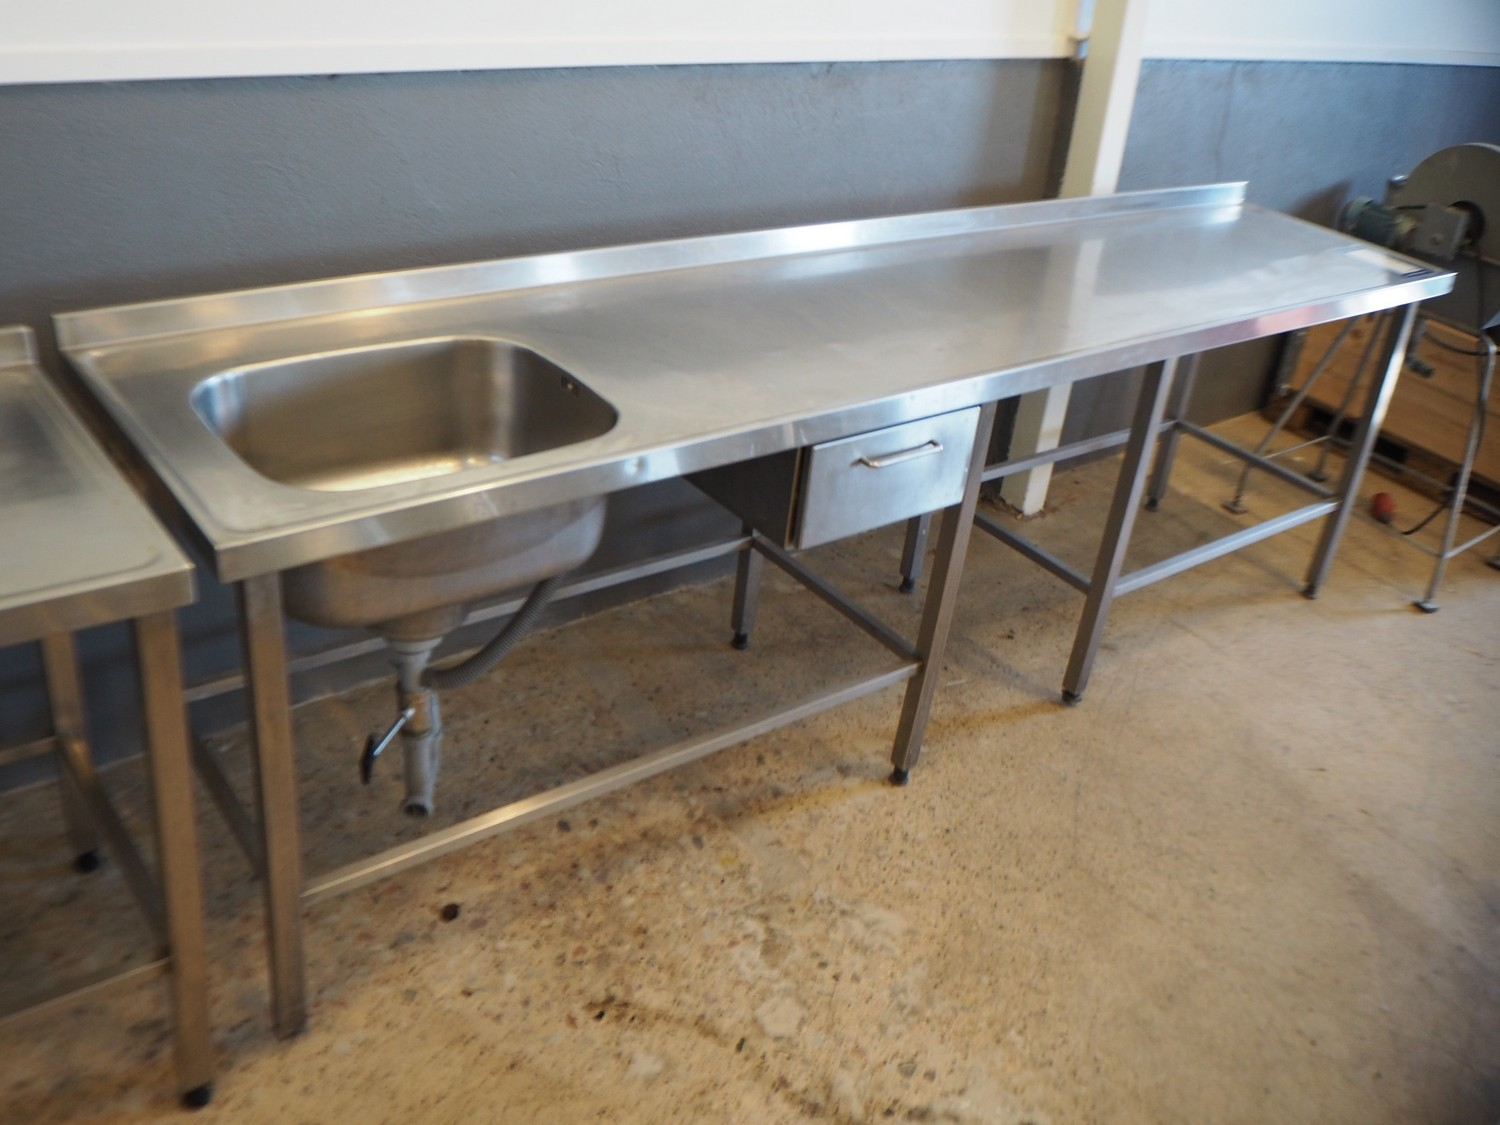 NN sink - Sinks - Food processing - Online auction machinery for the ...